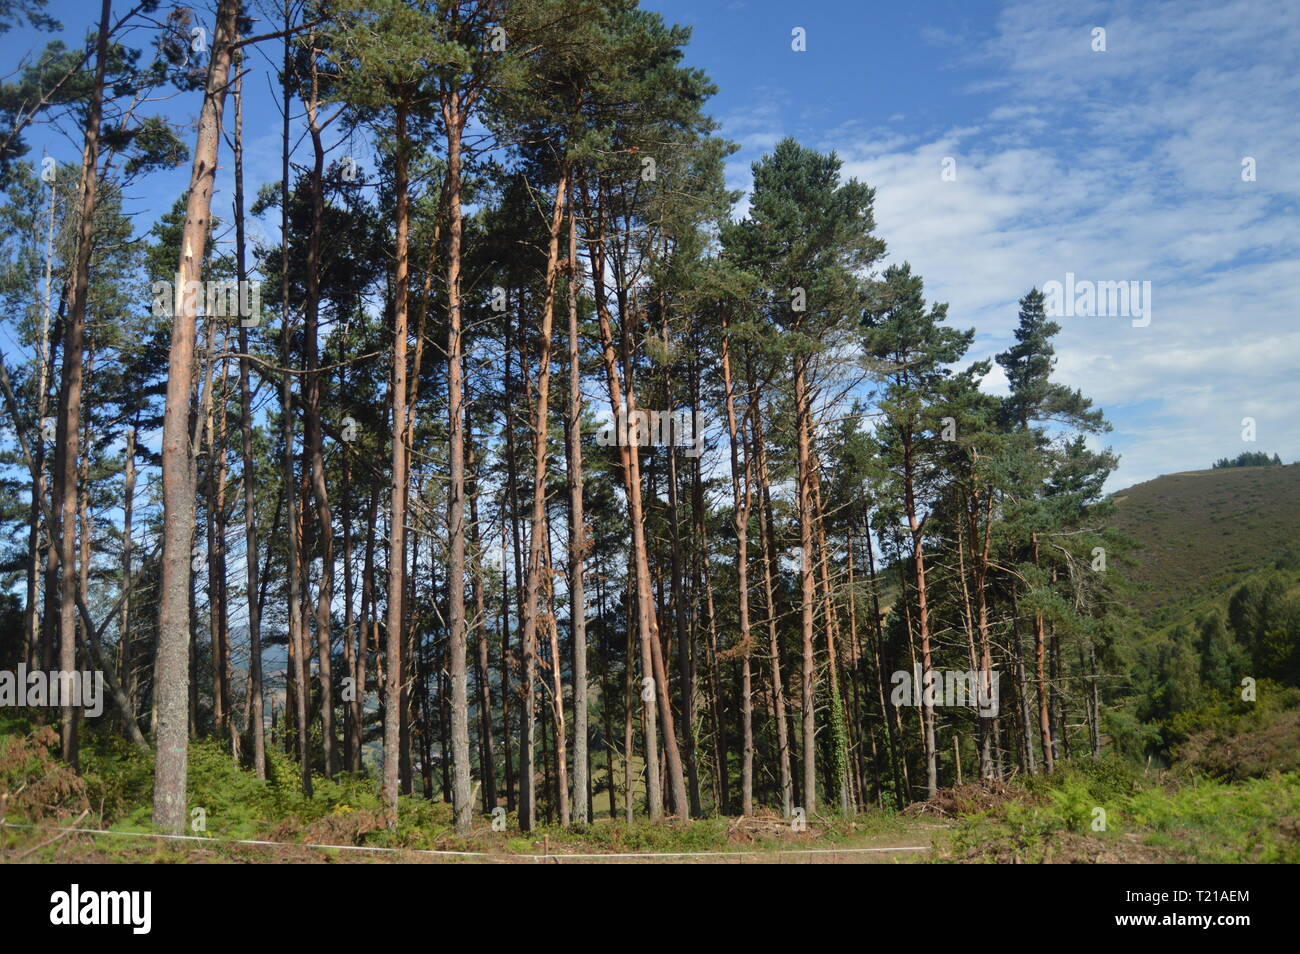 Eucalyptus Forest In The Mountains Of Galicia Delimiting With Asturias In Rebedul. Nature, Architecture, History, Street Photography. August 24, 2014. - Stock Image